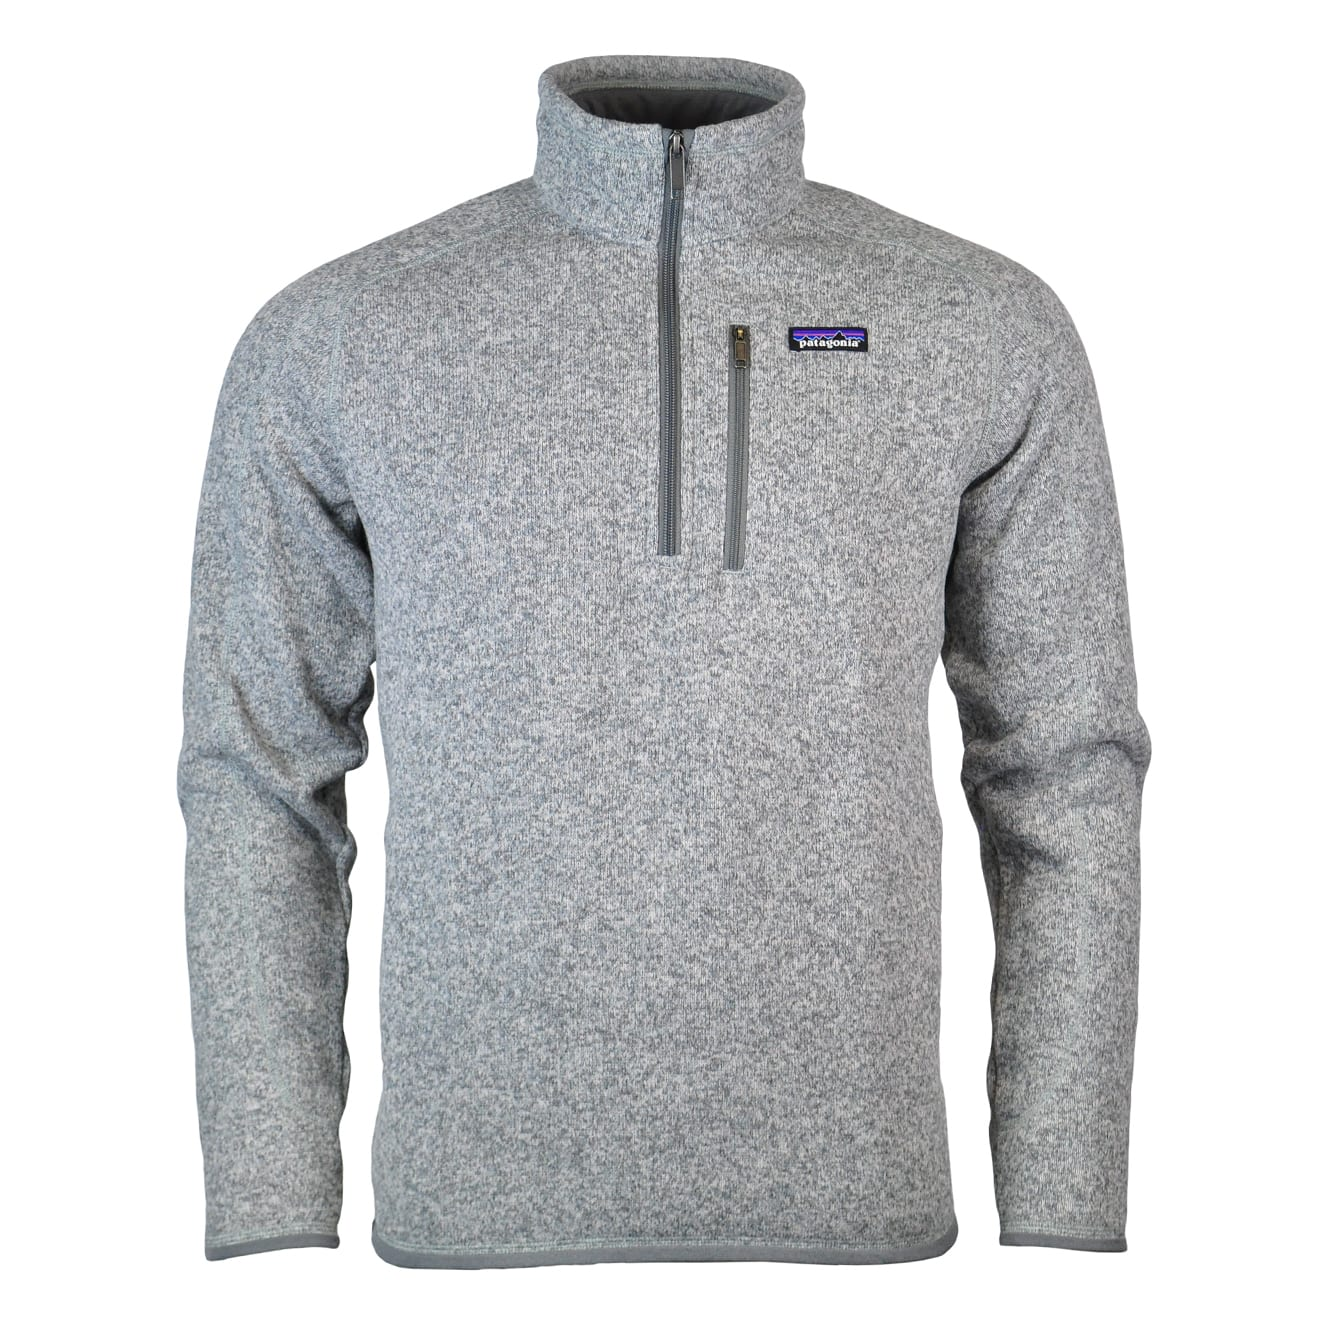 Patagonia Clothing Accessories The Sporting Lodge